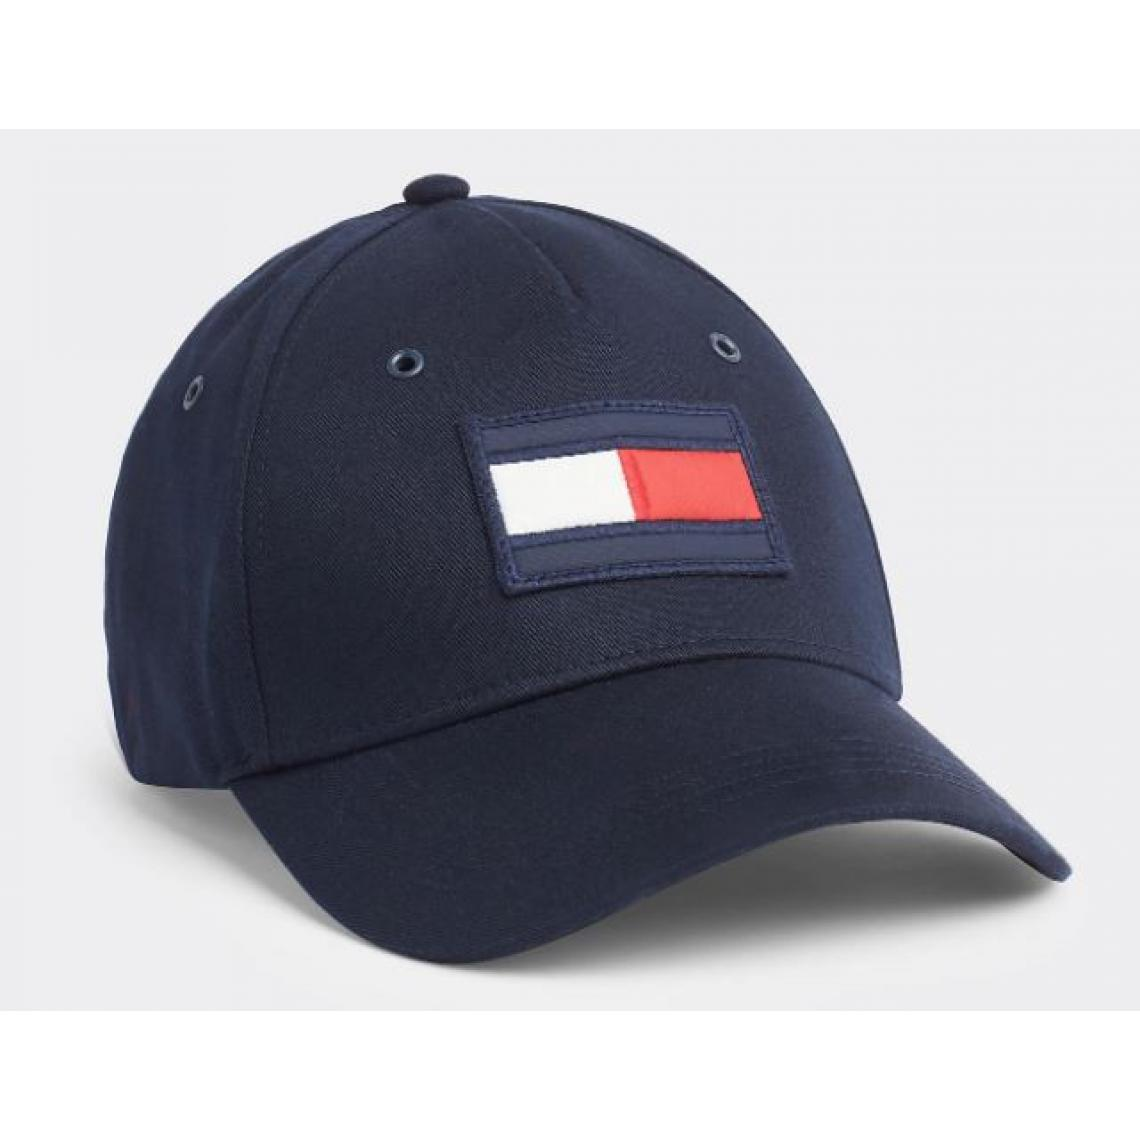 Casquette logotypée Tommy Hilfiger - Tommy Hilfiger Maroquinerie - Modalova